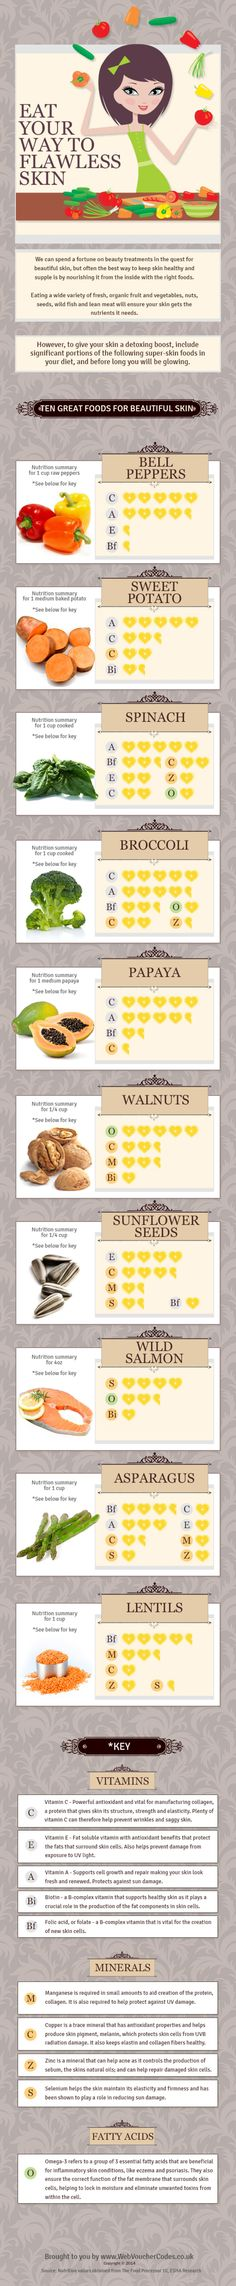 Top Ten Foods for Beautiful Skin Infographic by WebVouchersCodes via visuially.net #Beauty #Skin #Nutrition #Food #Miessence #Certifiedorganic